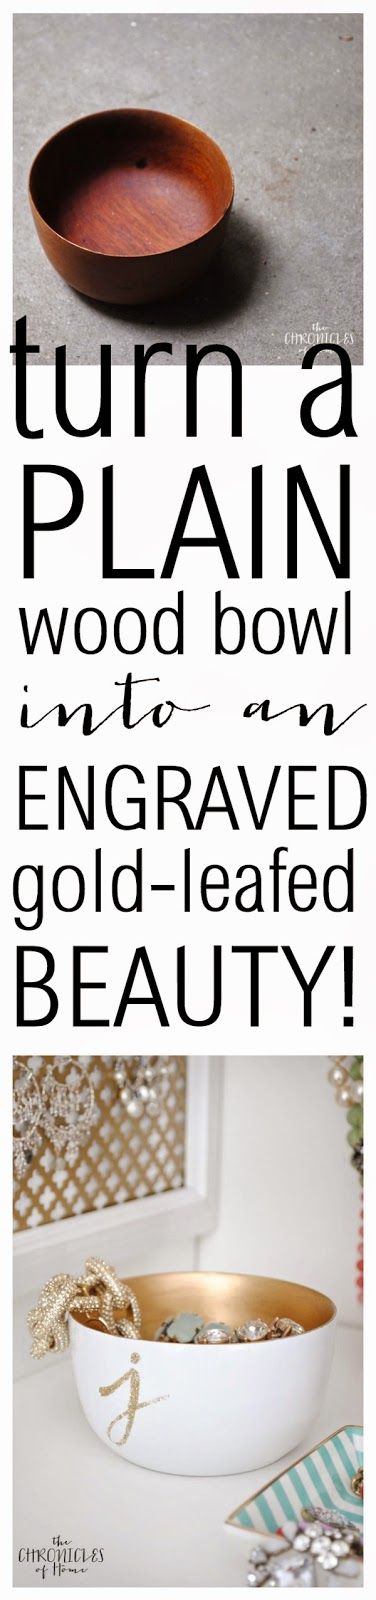 How to turn a plain wood bowl into an engraved, gold-leafed, monogrammed beauty!